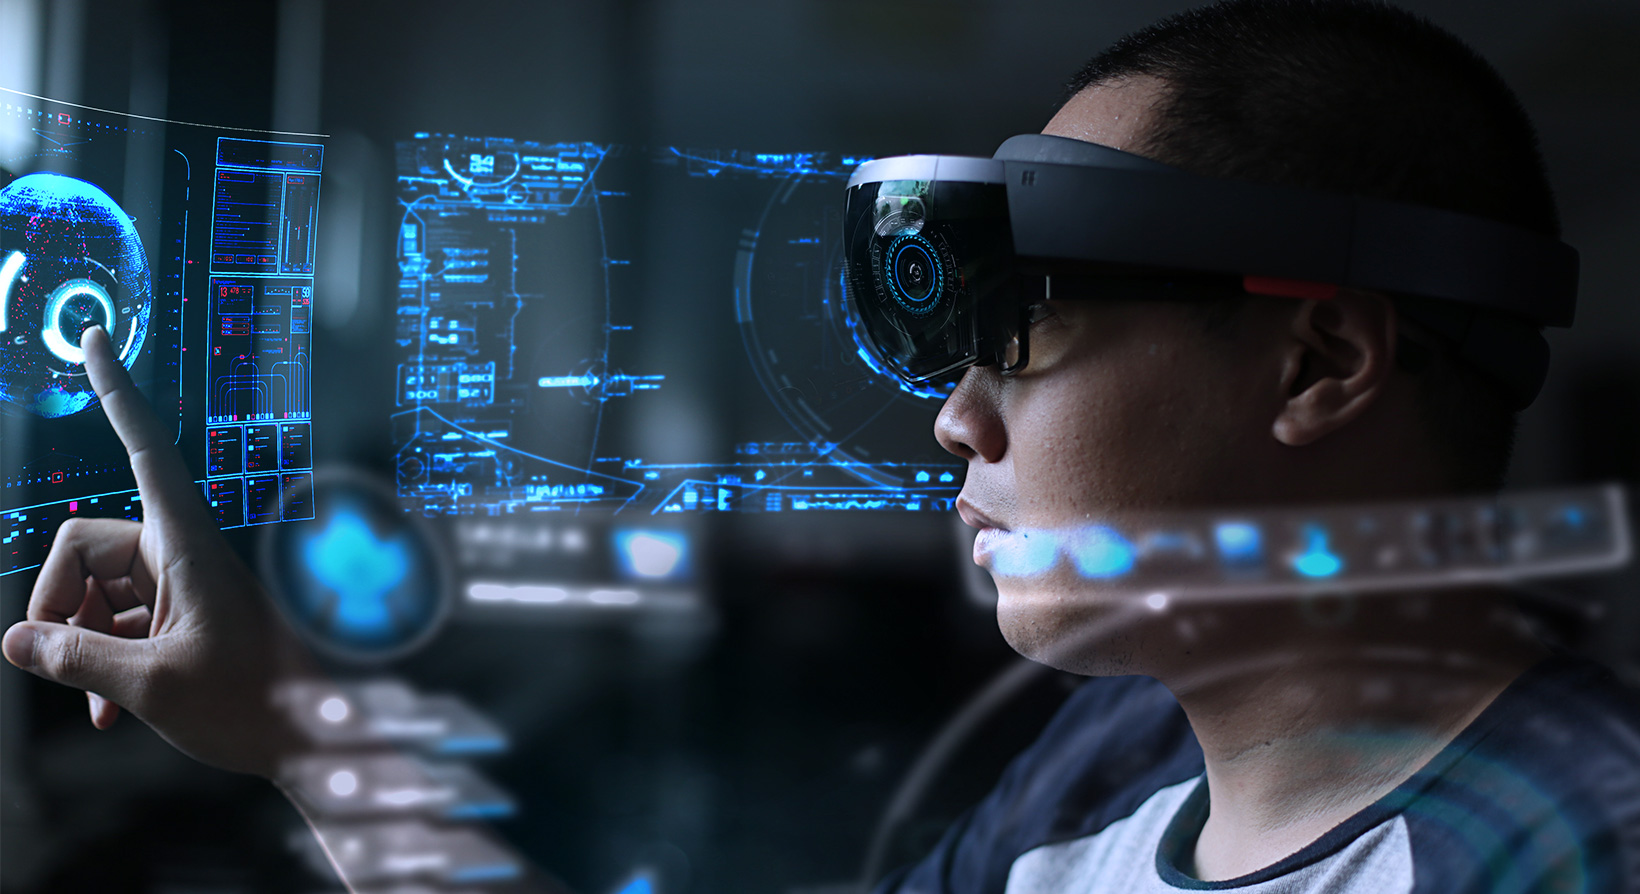 young man using hololens for visualizing data with augmented reality